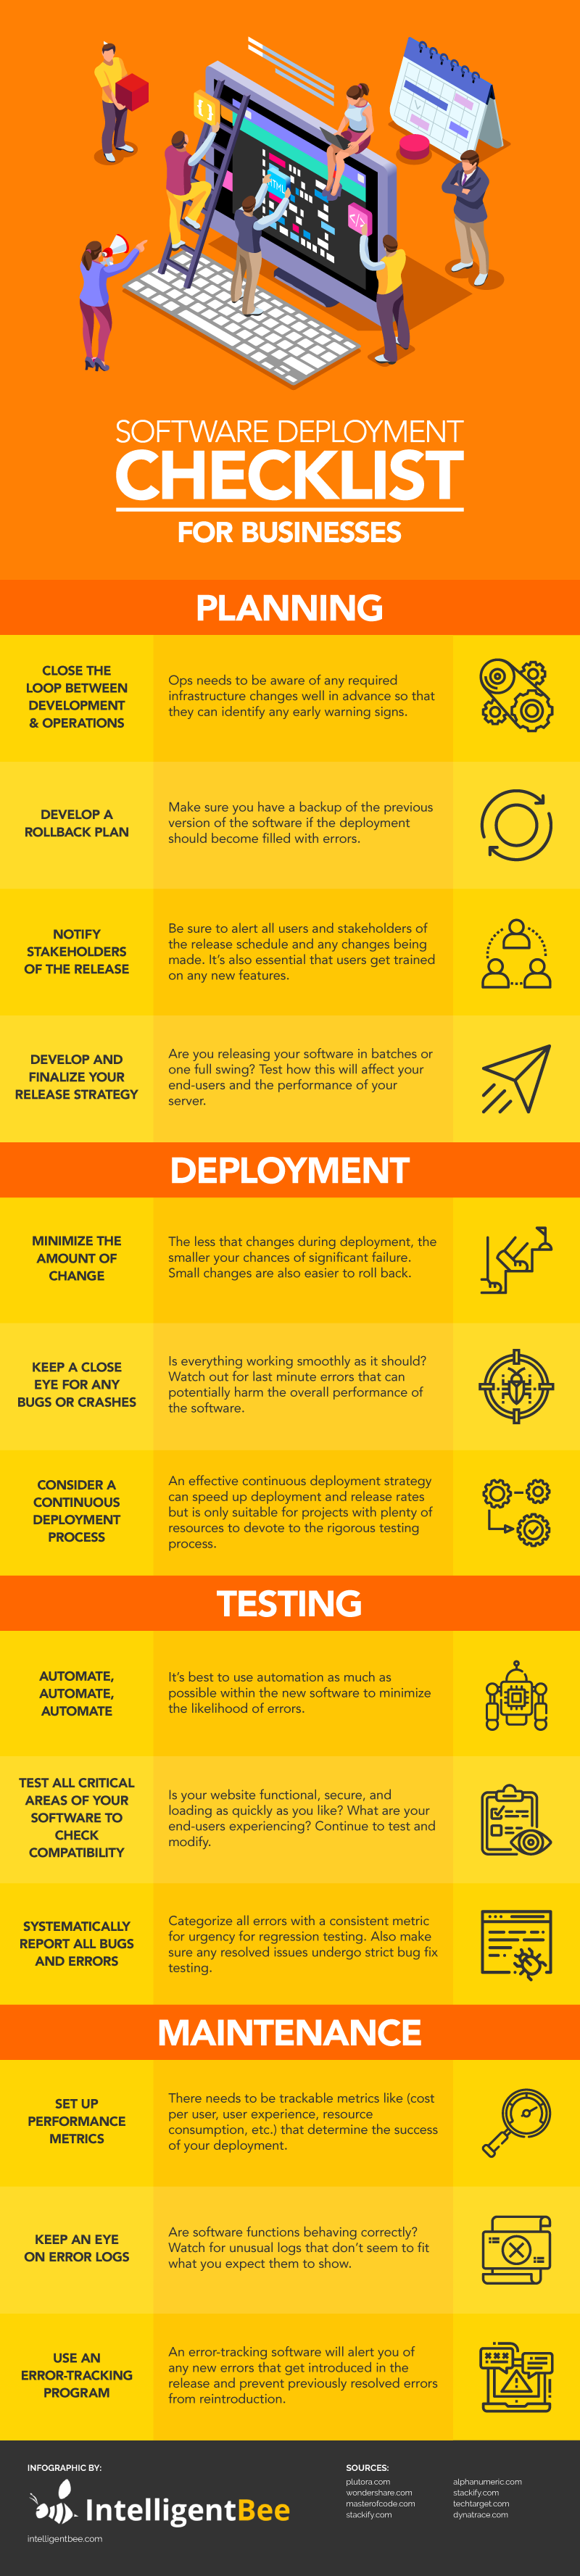 Software Deployment Checklist for Businesses